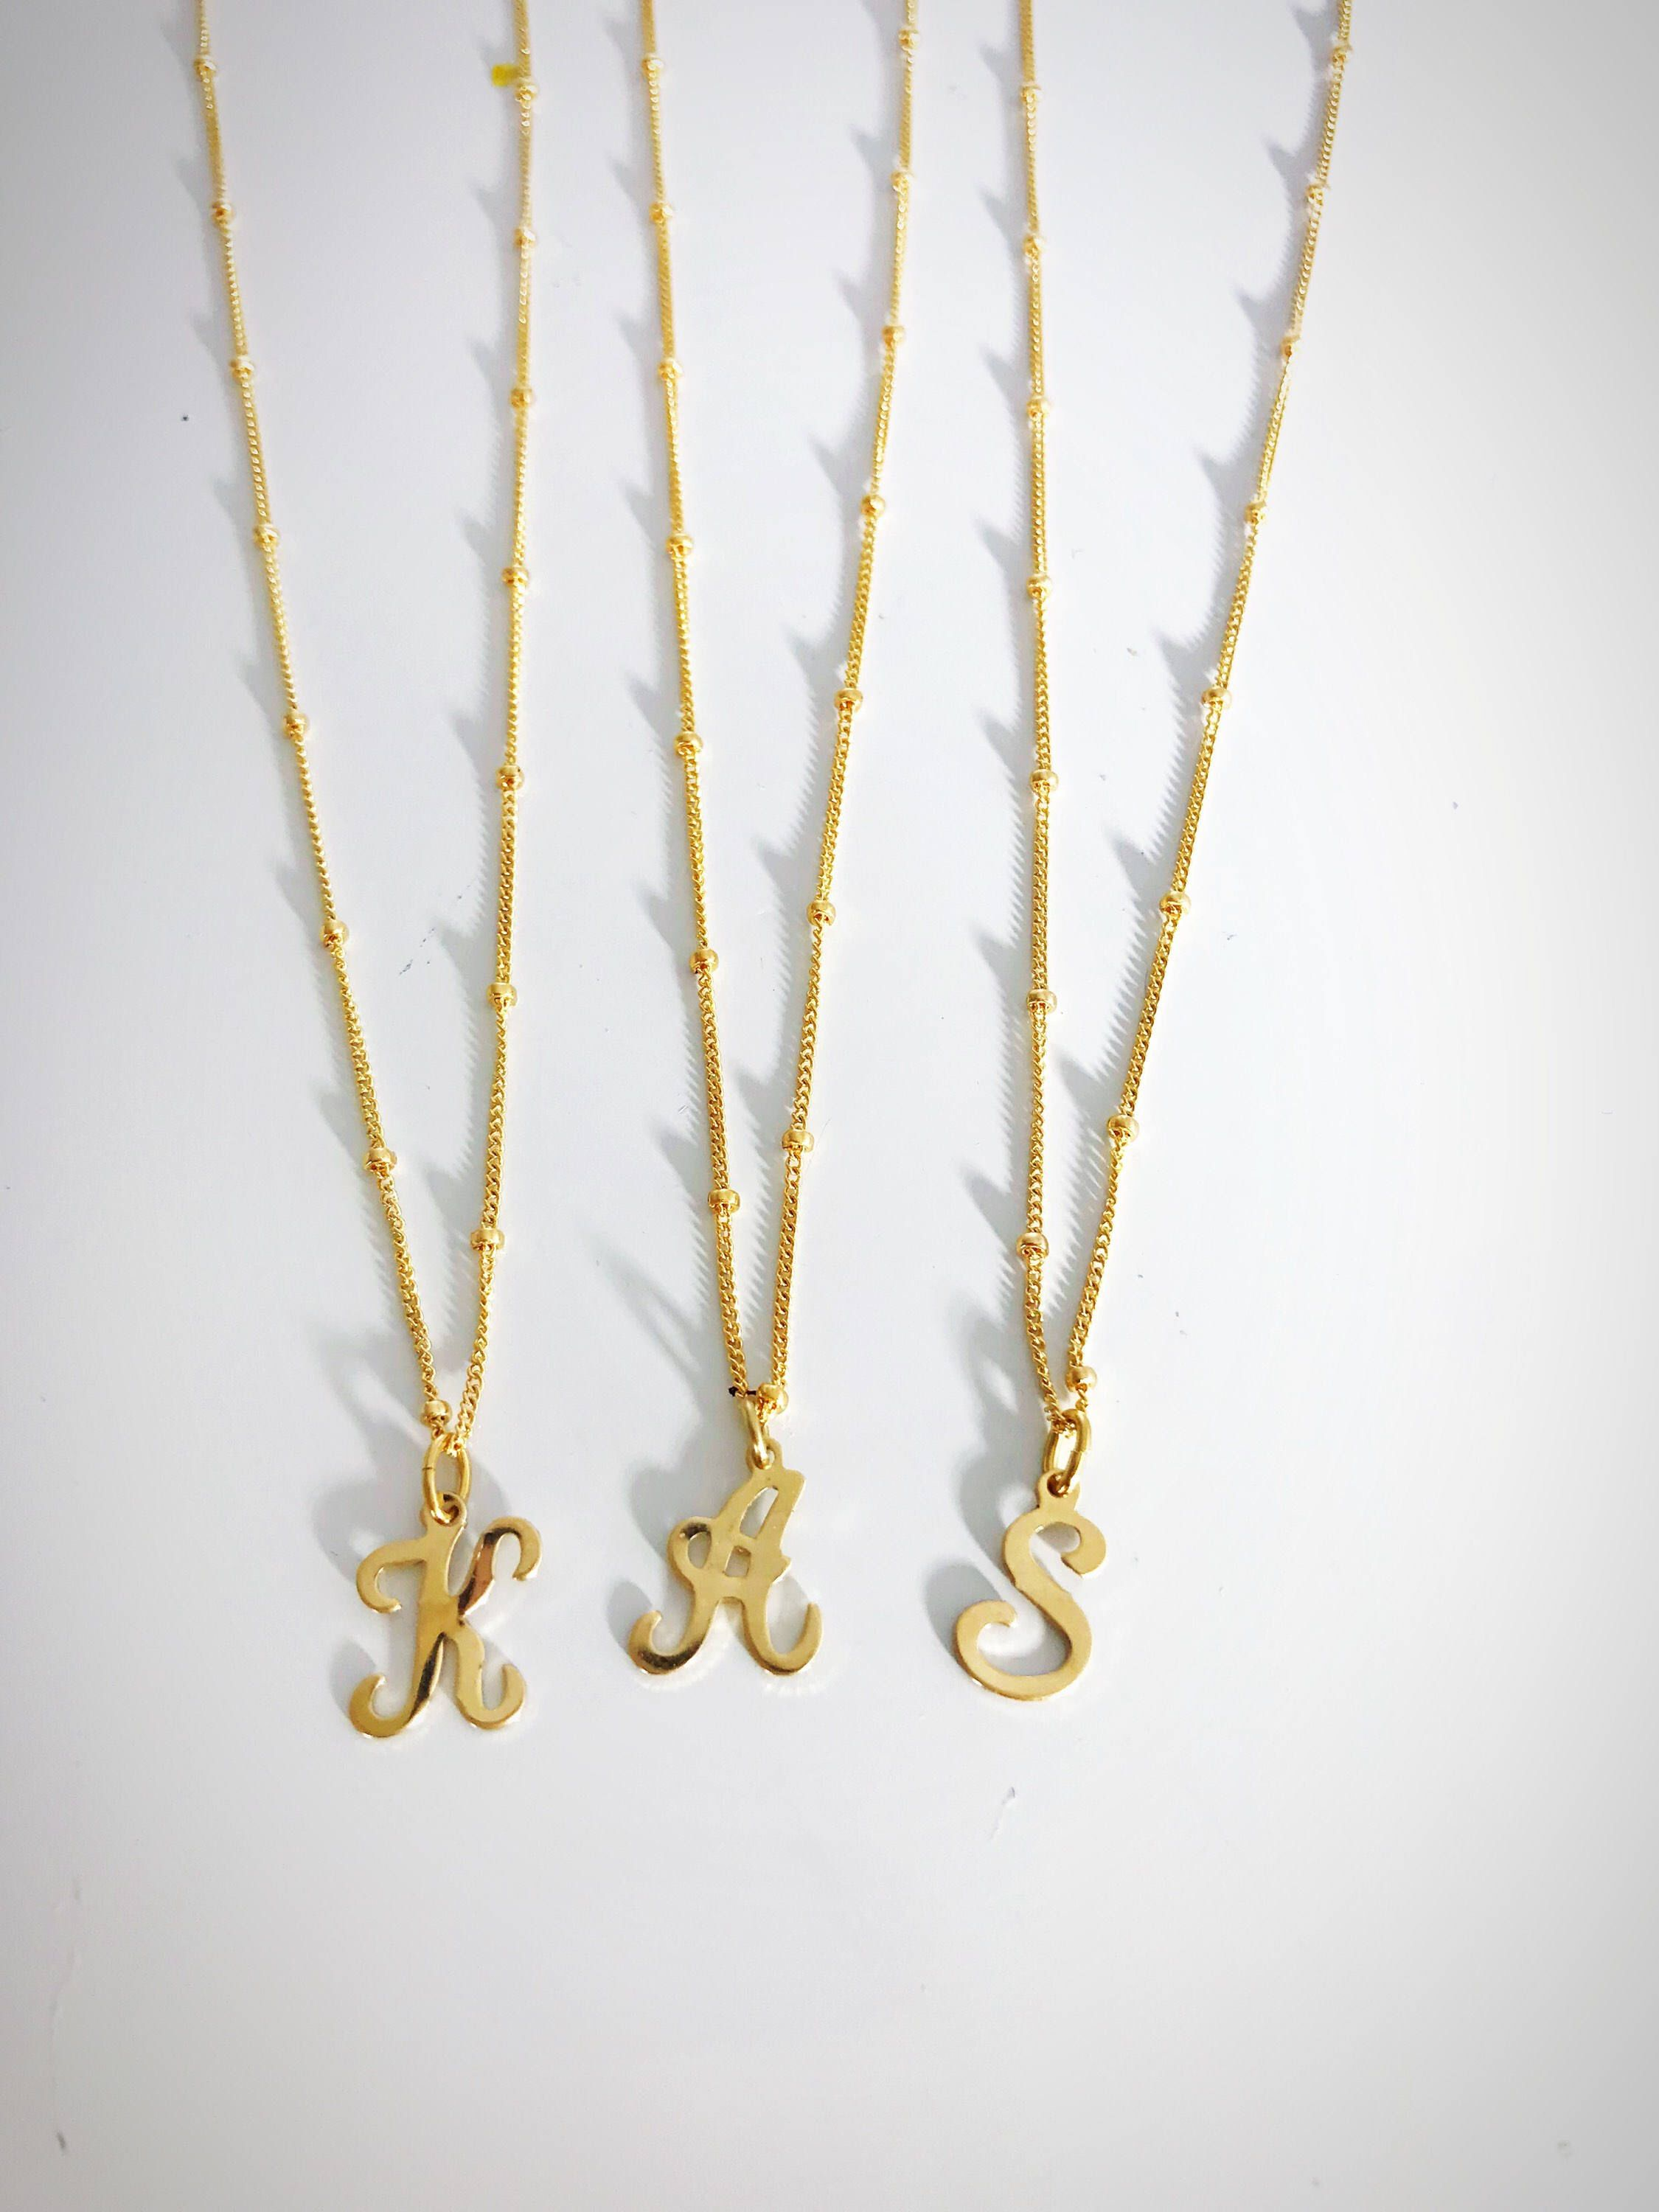 initials chain c initial pendant gold pjimage chains hammered trace yellow